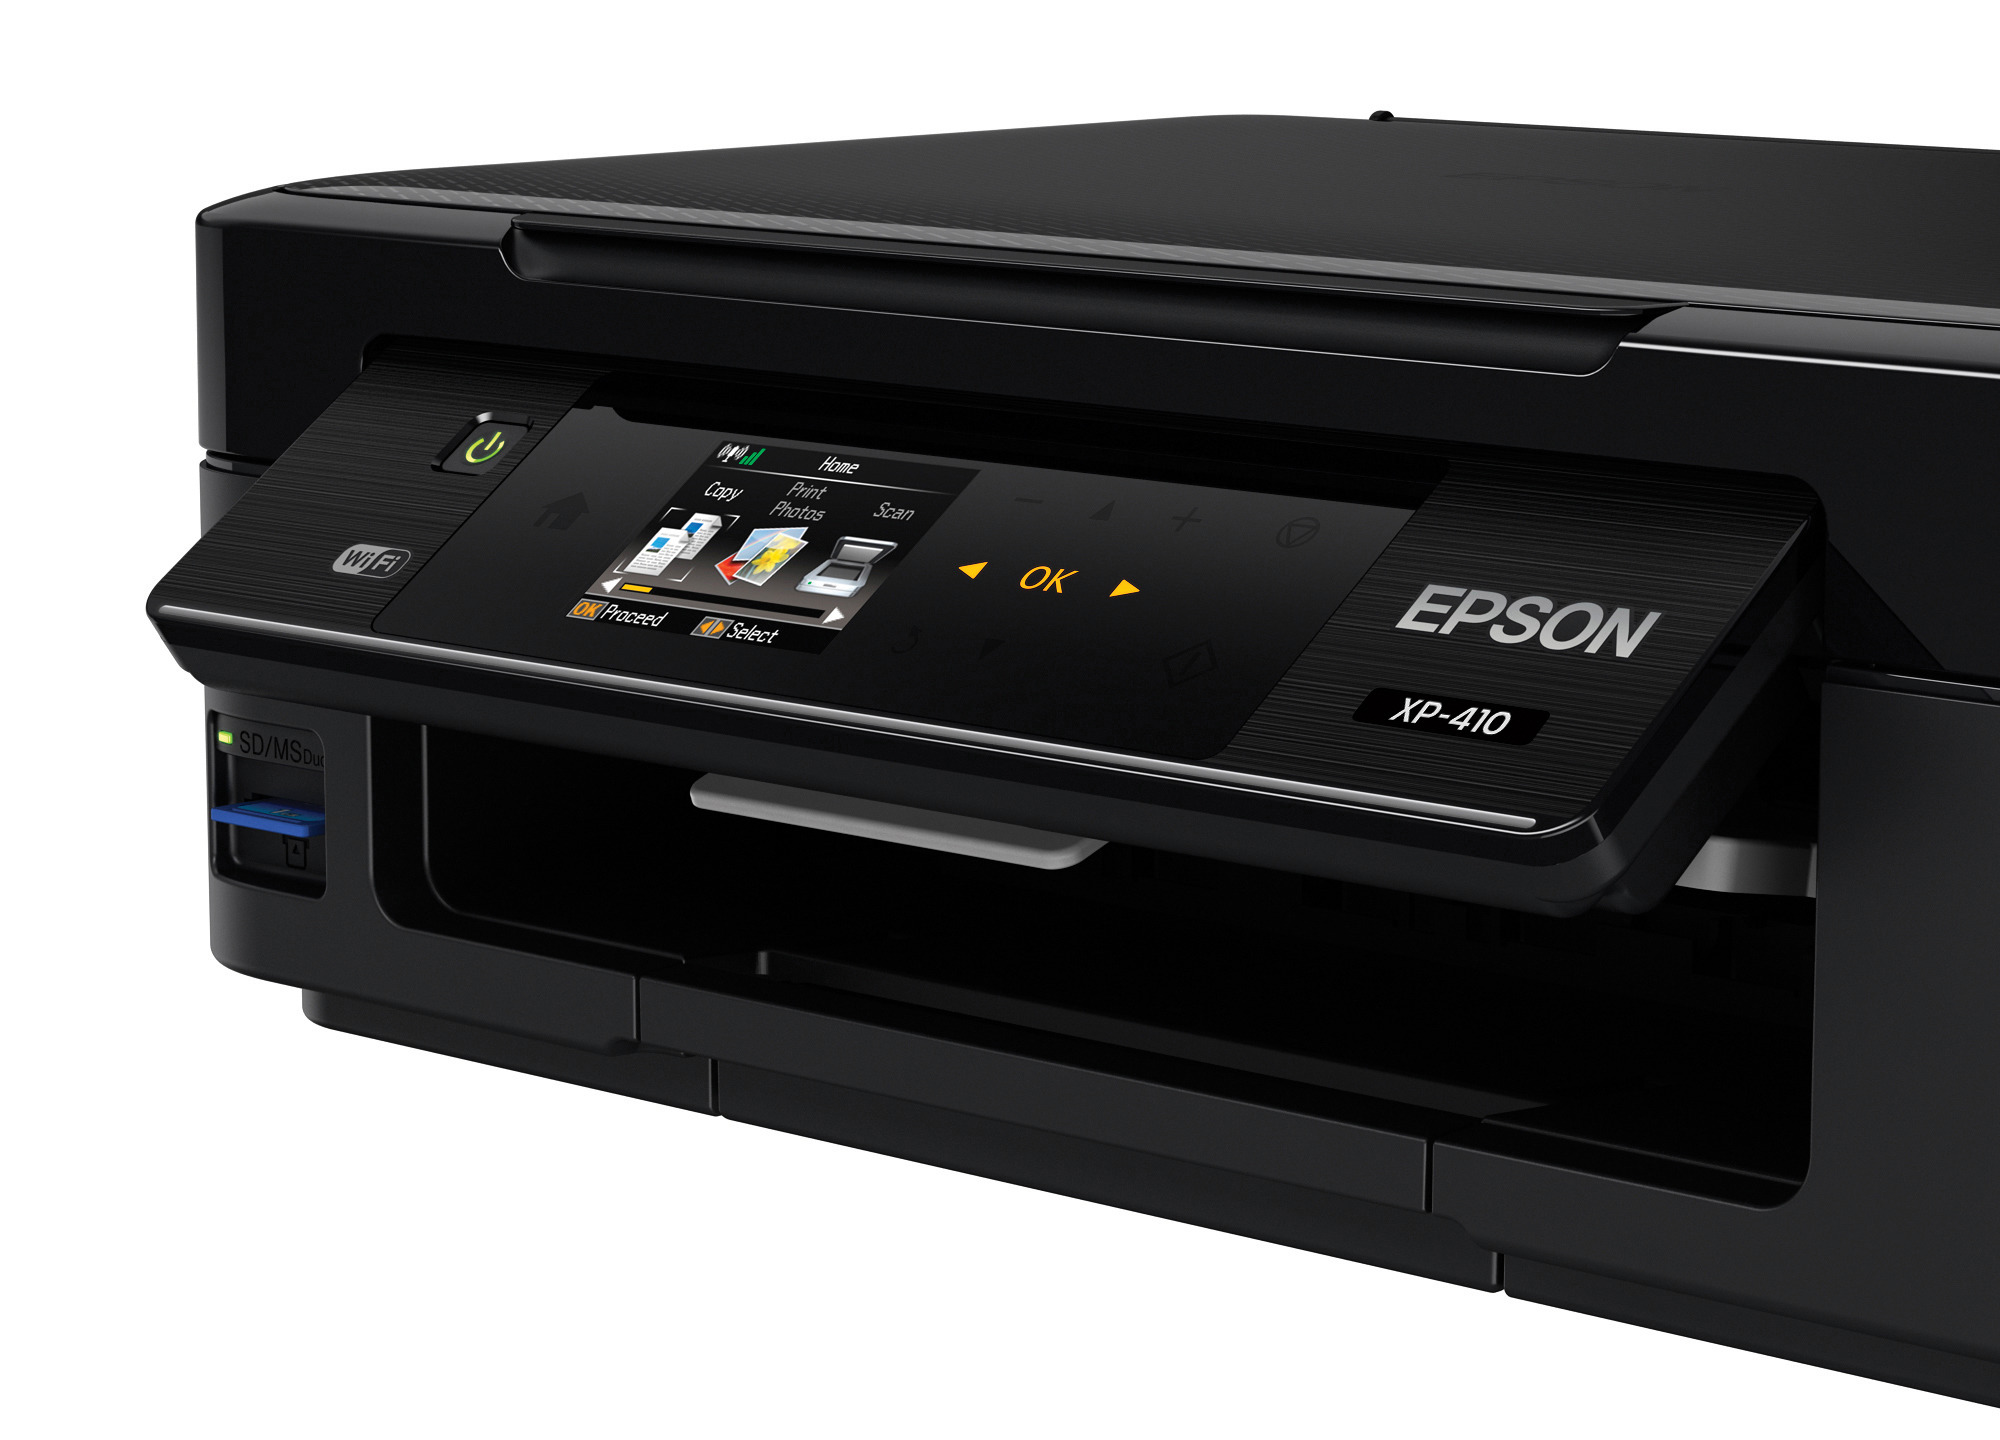 Epson XP Expression Home XP410 (BR2) NEW Printer Reset